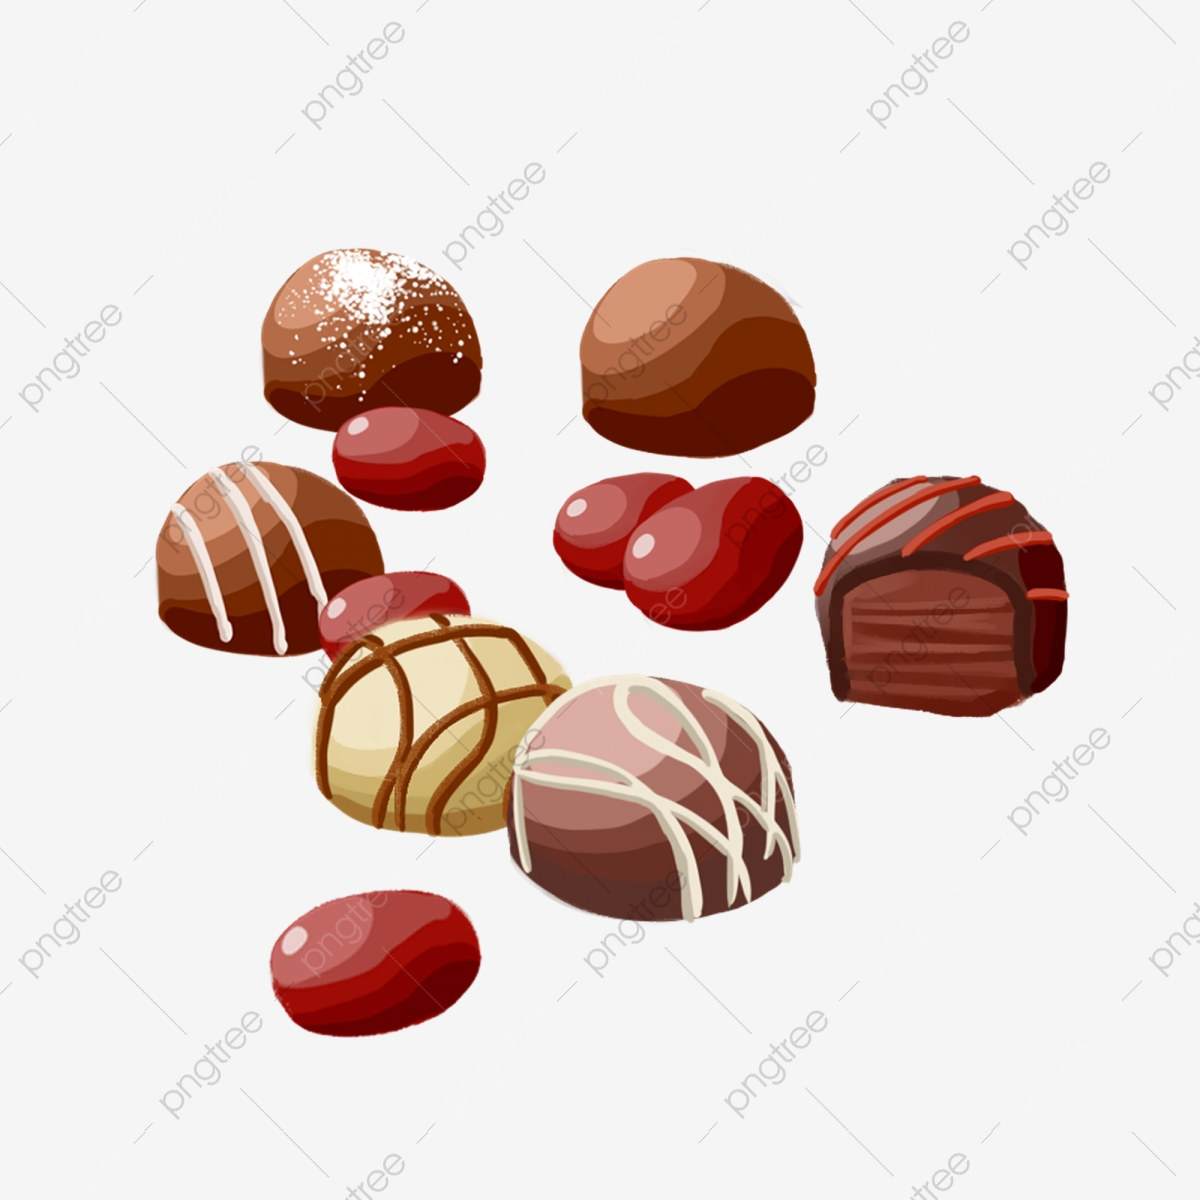 Free Chocolate Transparent Background, Download Free Clip Art, Free Clip Art  on Clipart Library